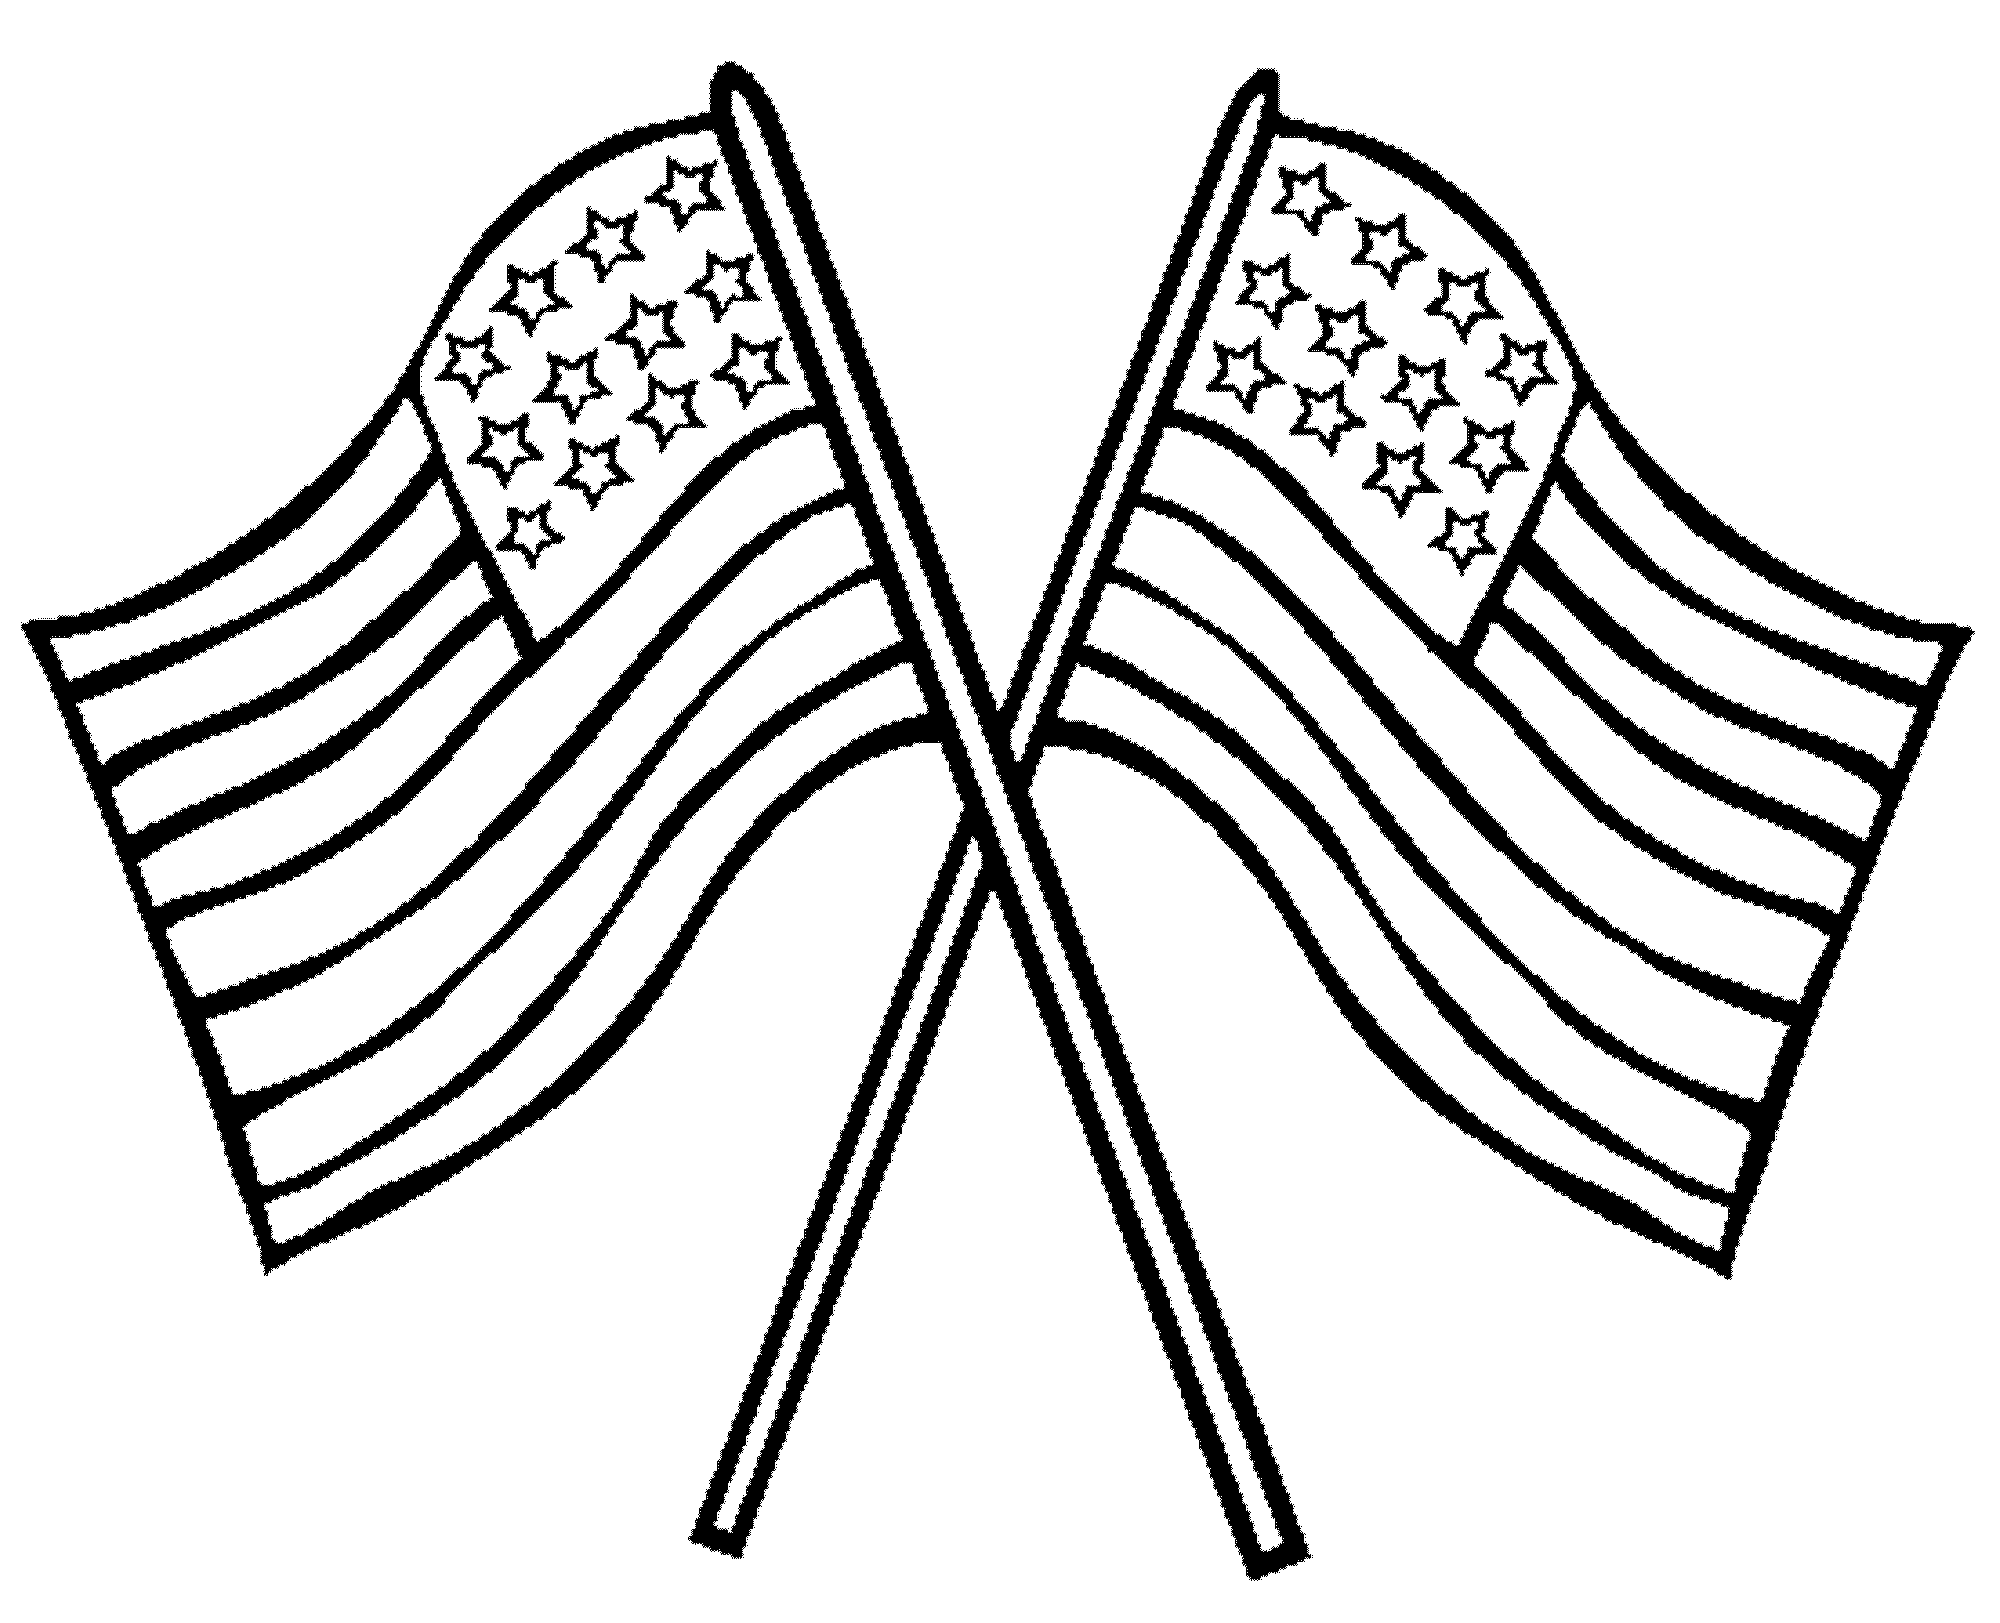 the american flag coloring page american flag coloring page for the love of the country american page flag the coloring